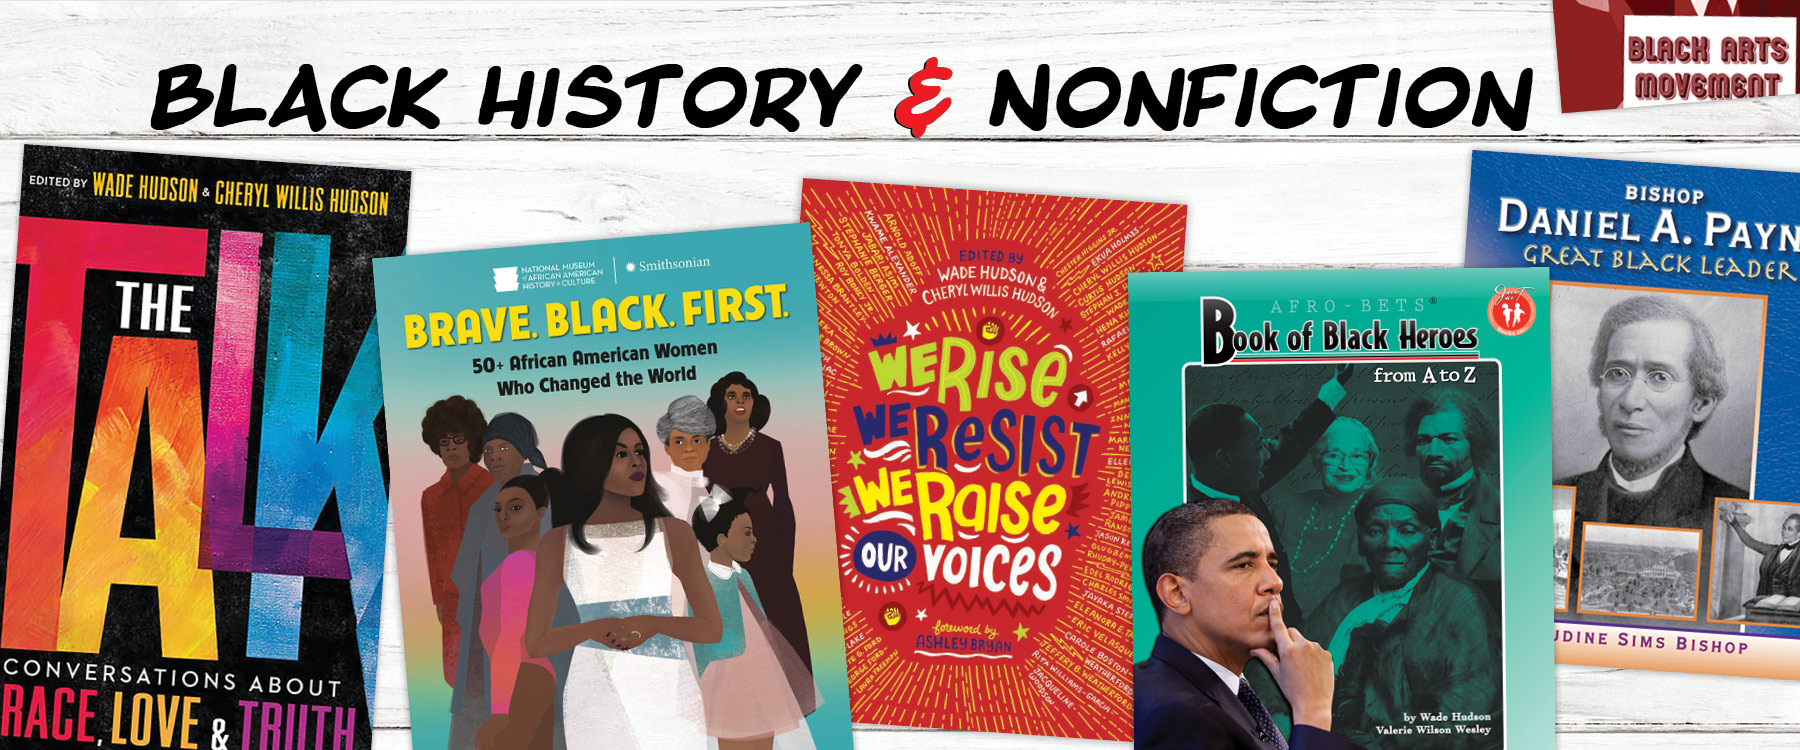 banners-just-us-books-black-history-nonfiction.jpg